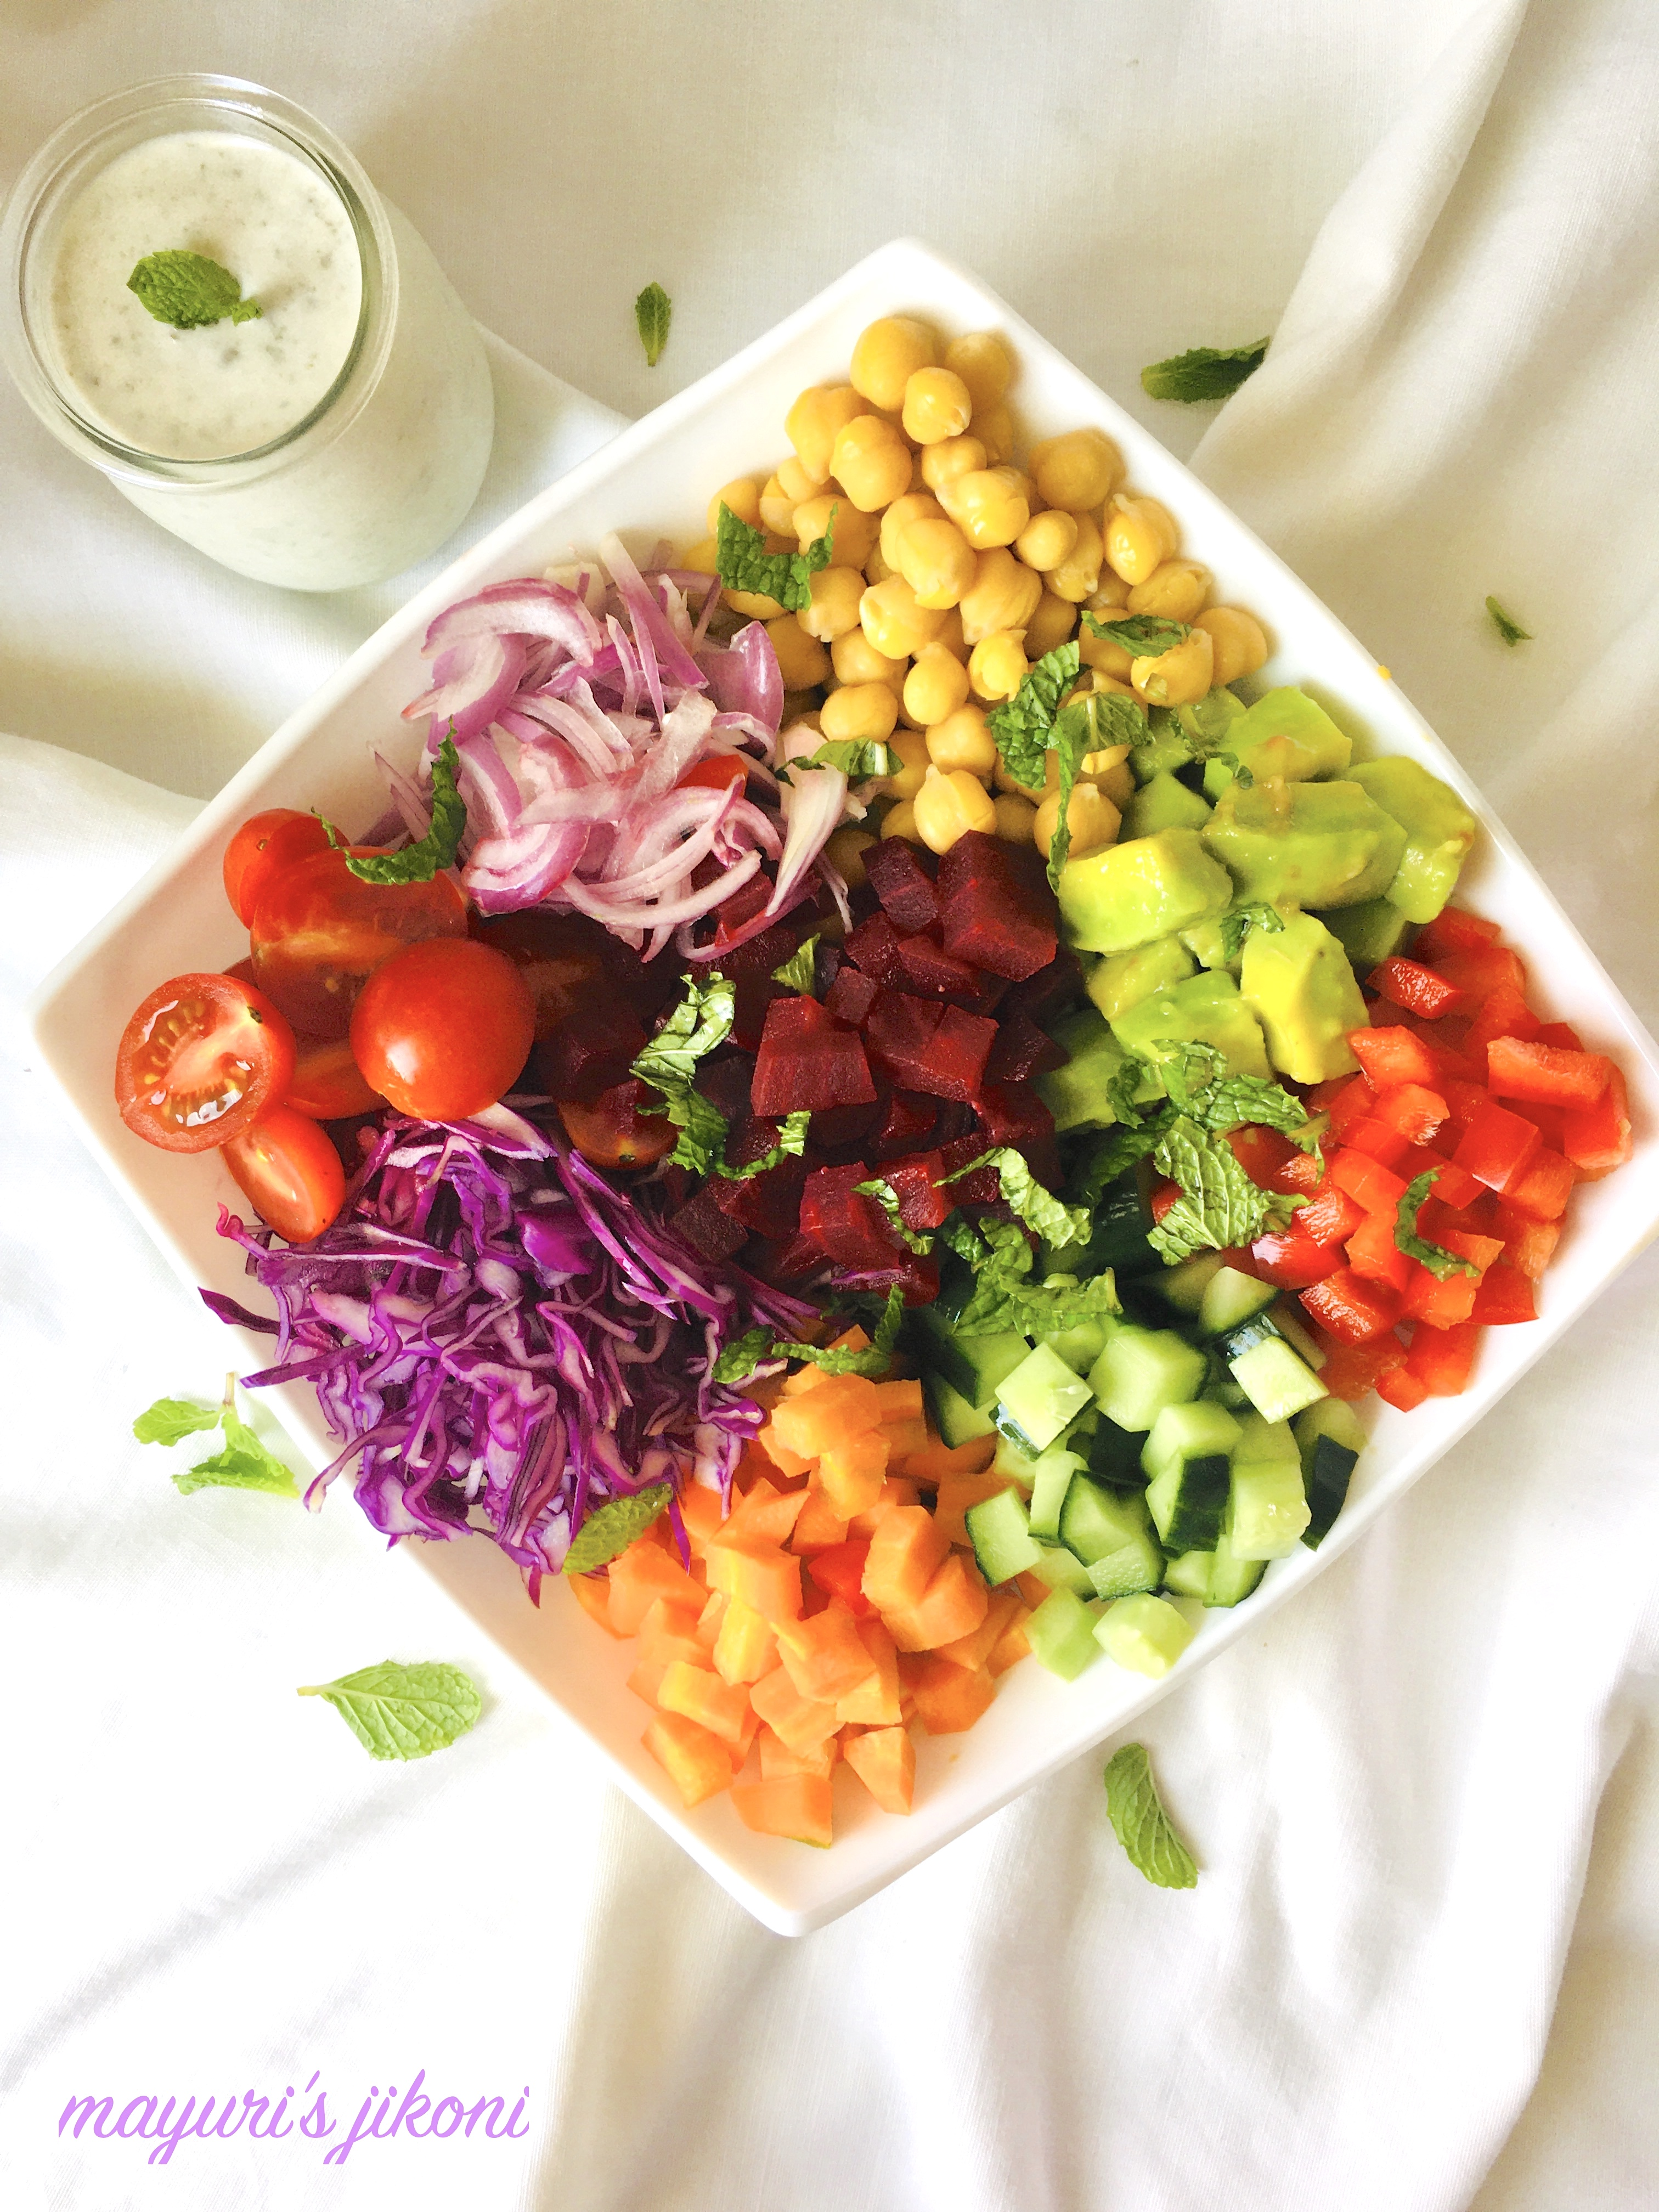 Rainbow Salad Bowl Mayuri S Jikoni Avocado Beetroot Carrot Chickpeas Cucumber Gluten Free Healthy Meal Red Cabbage Salad Salad Bowl Salad Dressing Salad Green Satvik Option Tomato Vegan Option Yogurt Za Atar